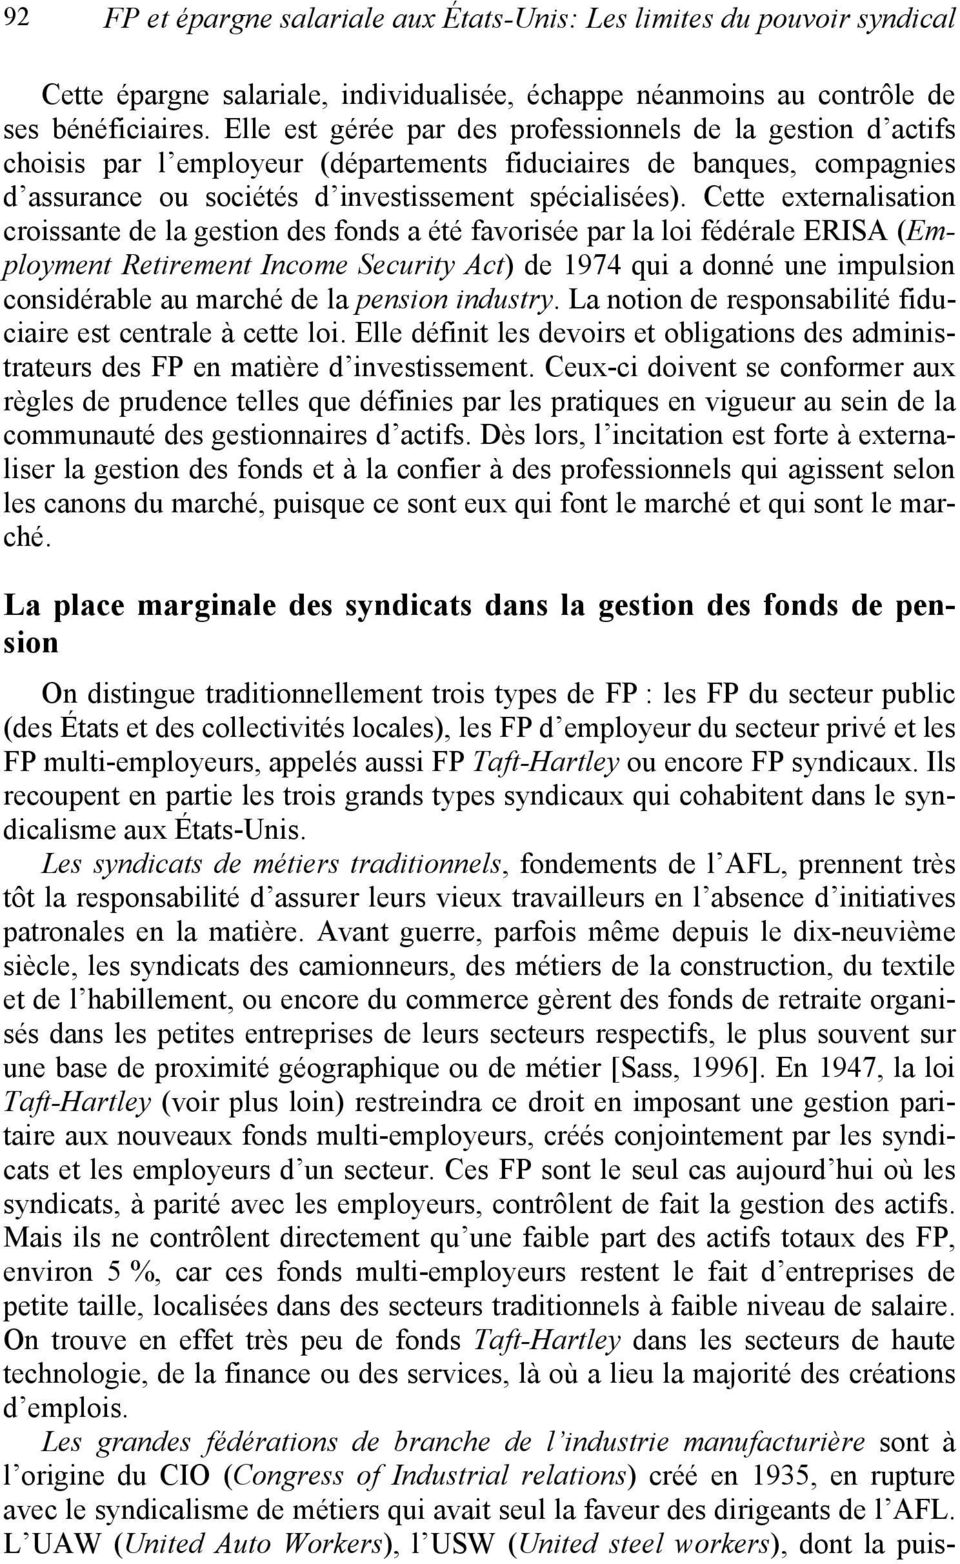 Cette externalisation croissante de la gestion des fonds a été favorisée par la loi fédérale ERISA (Employment Retirement Income Security Act) de 1974 qui a donné une impulsion considérable au marché